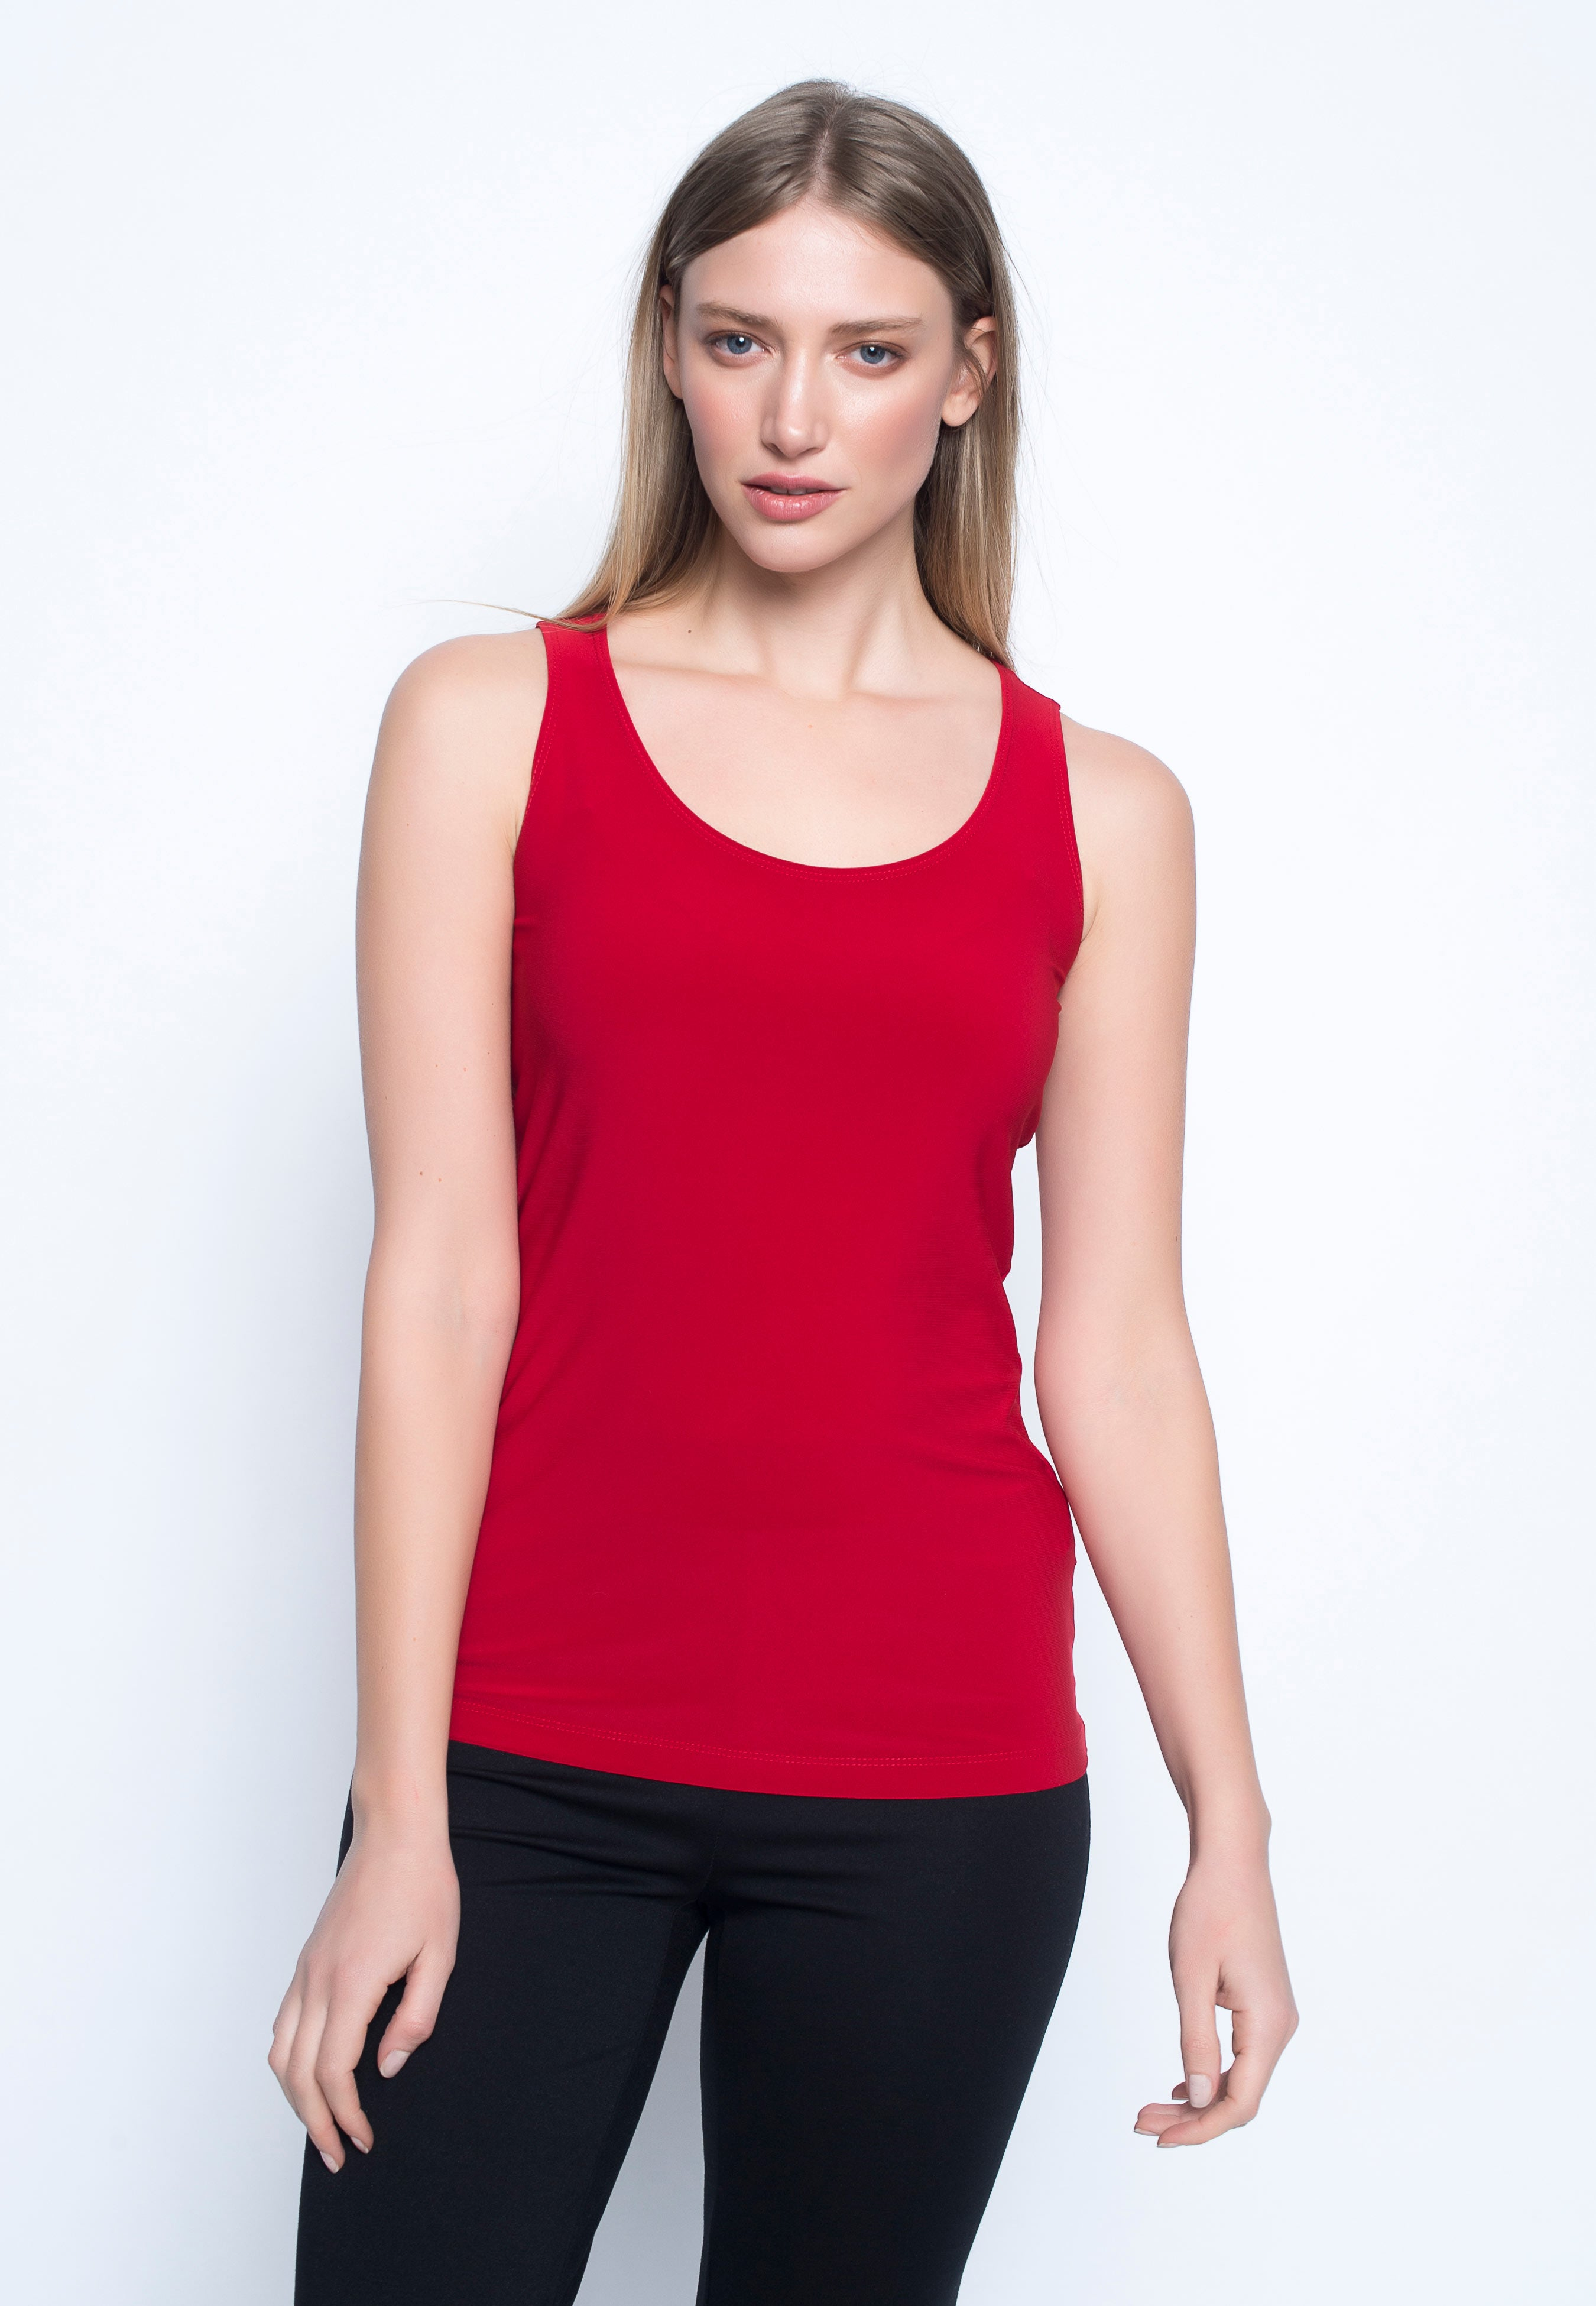 Scoop Neck Tank in red by Picadilly canada